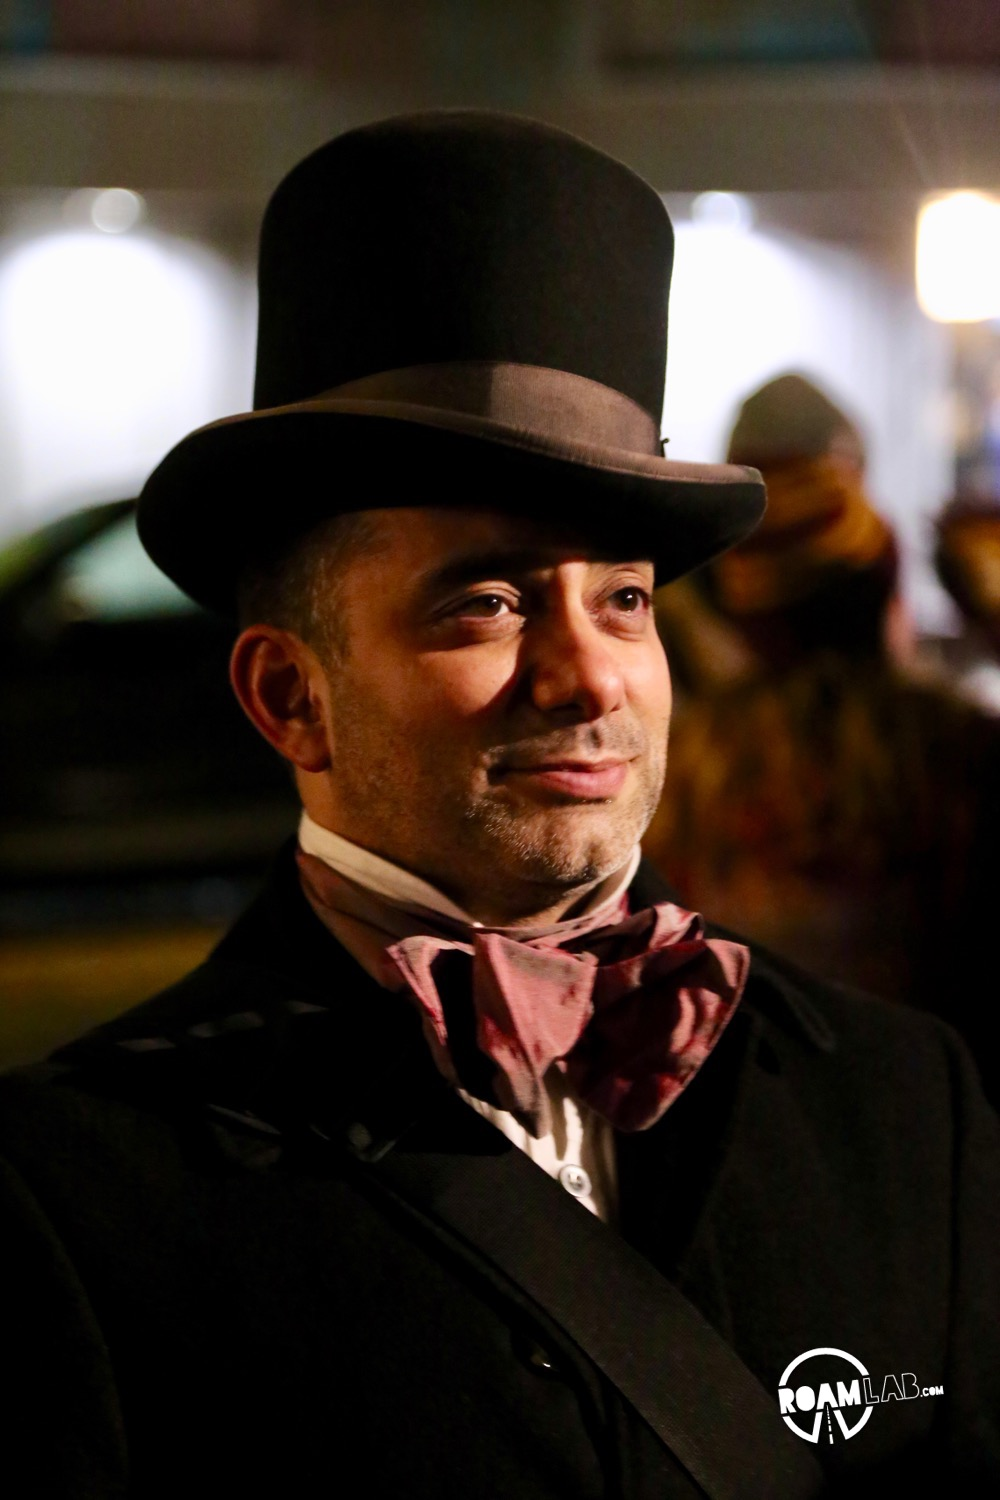 Christian Cagigal is a fantastic showman, weaving dramatic ghost tales of San Francisco history and the macabre along a moderate walking tour.